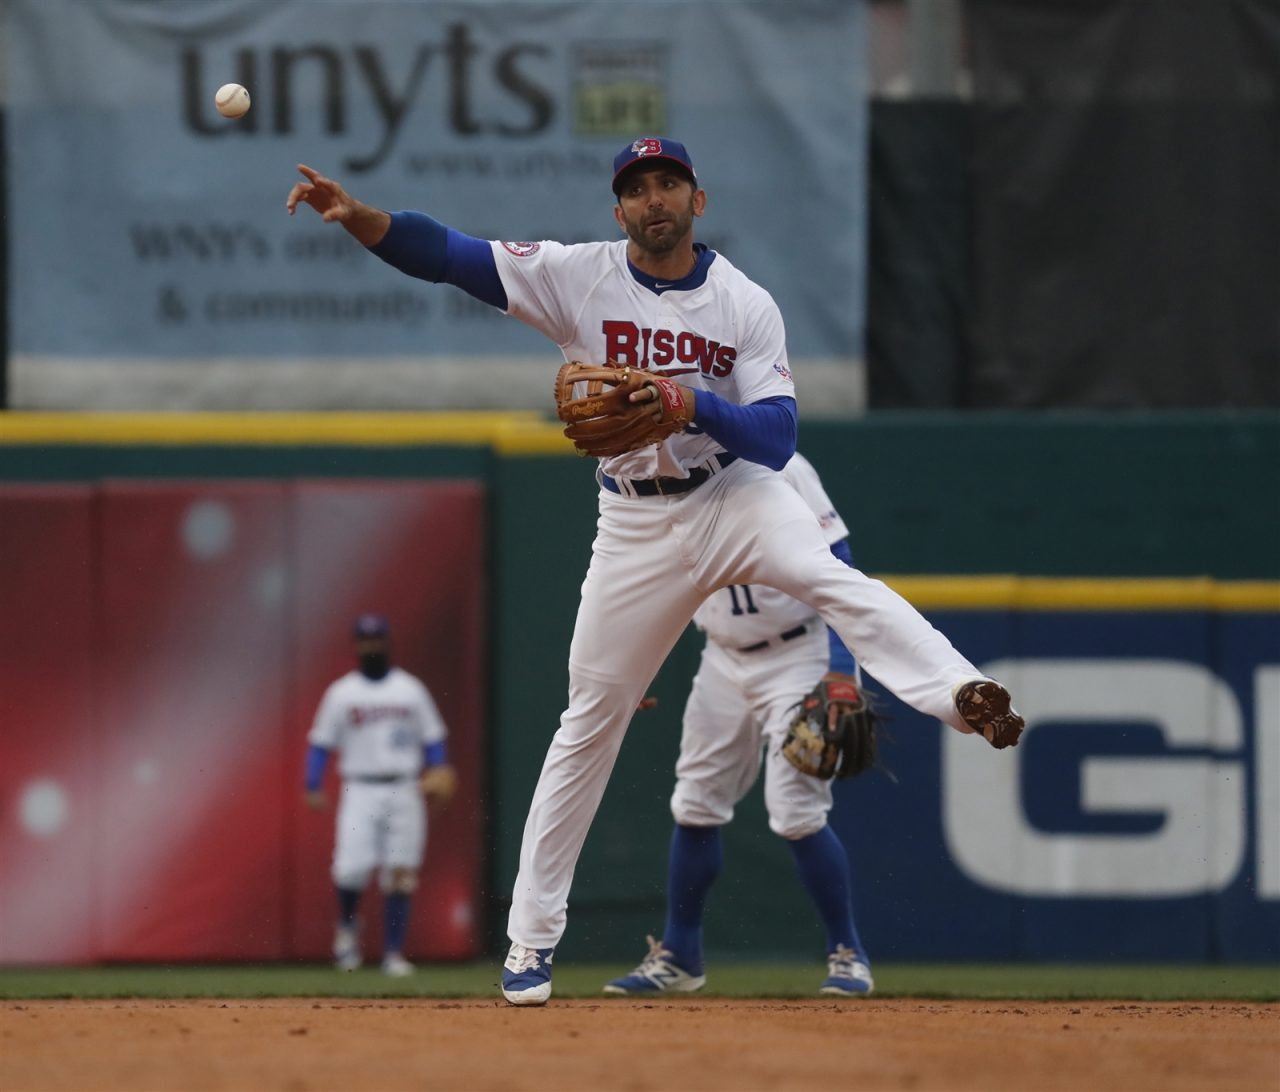 Jason Leblebijian said the new extra-inning rule has been interesting this season. (Harry Scull Jr./Buffalo News File Photo)